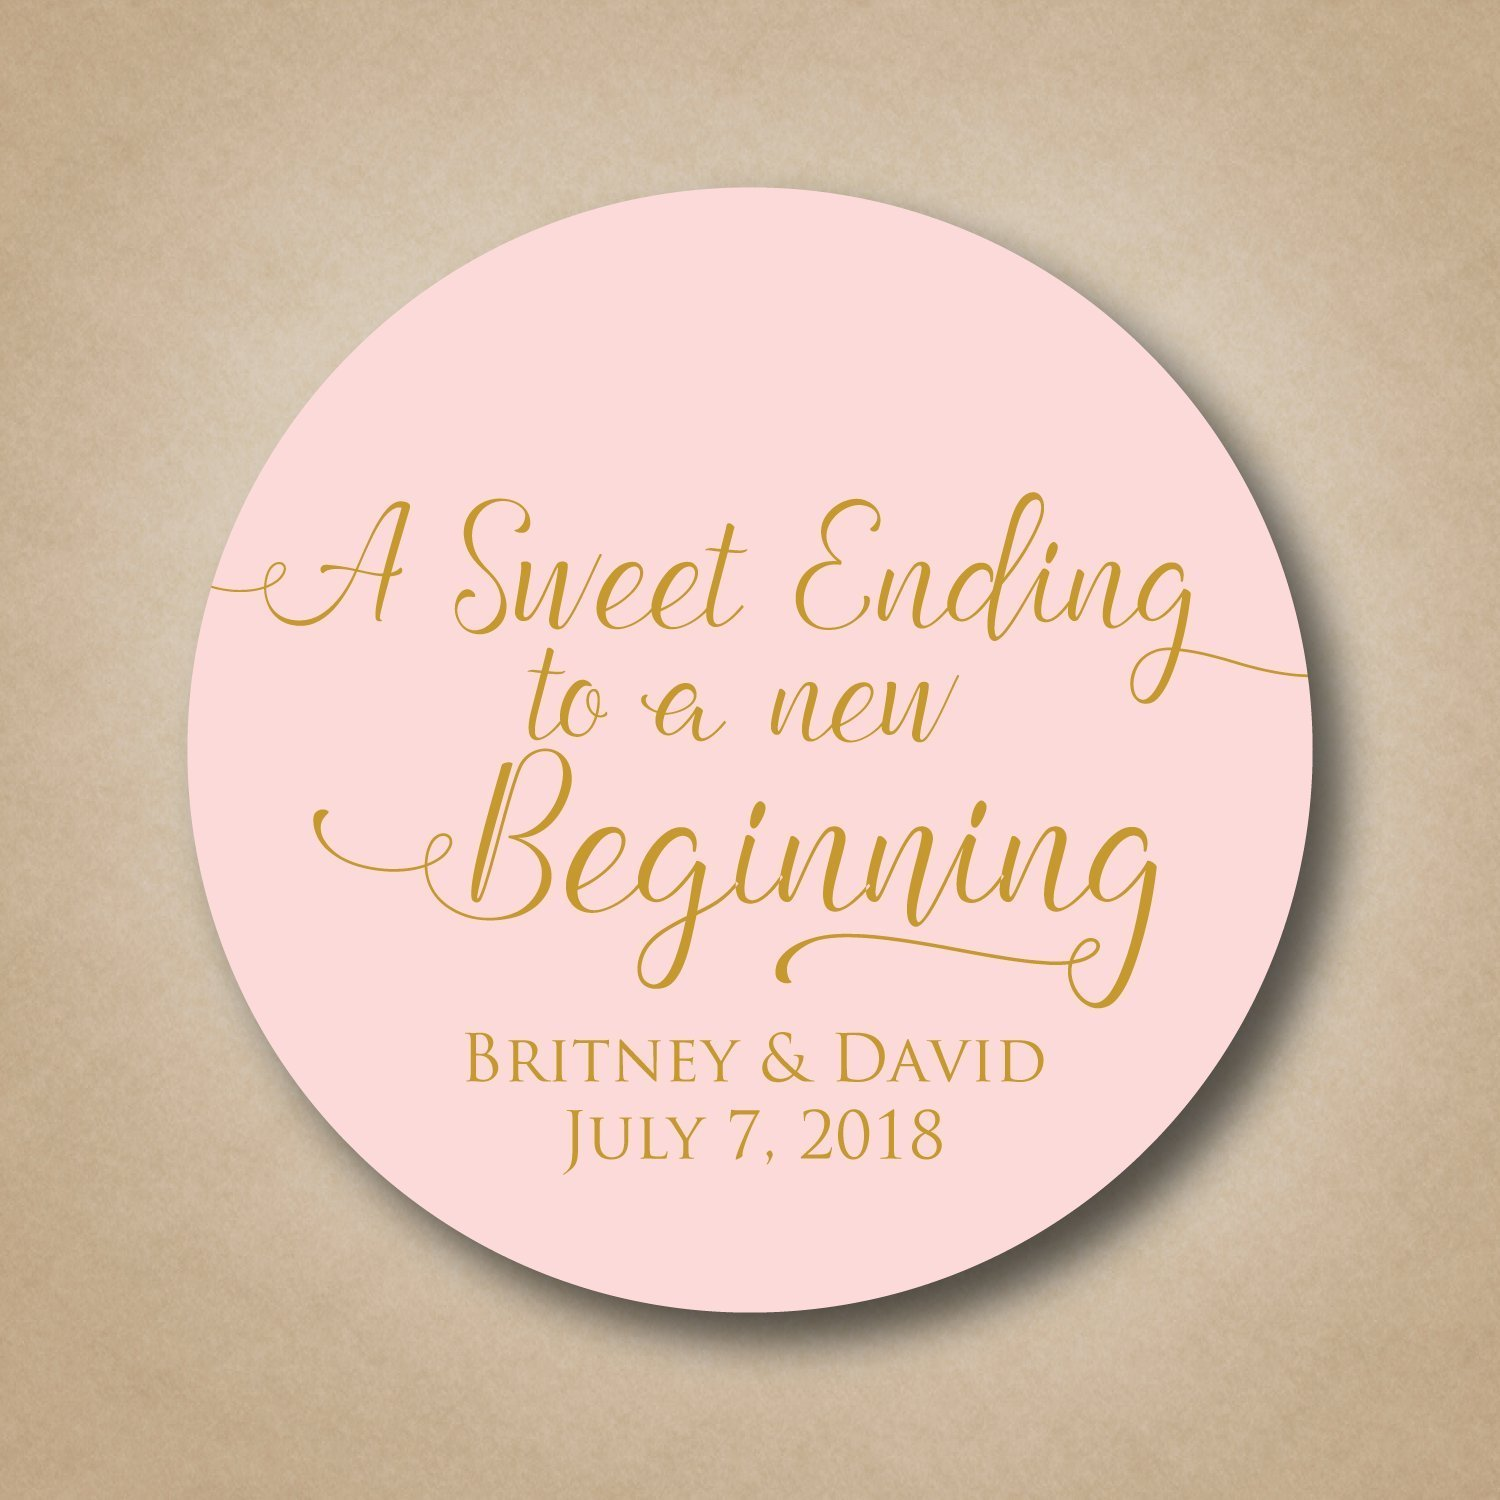 Amazon.com: A Sweet Ending to a new Beginning Wedding Stickers: Handmade